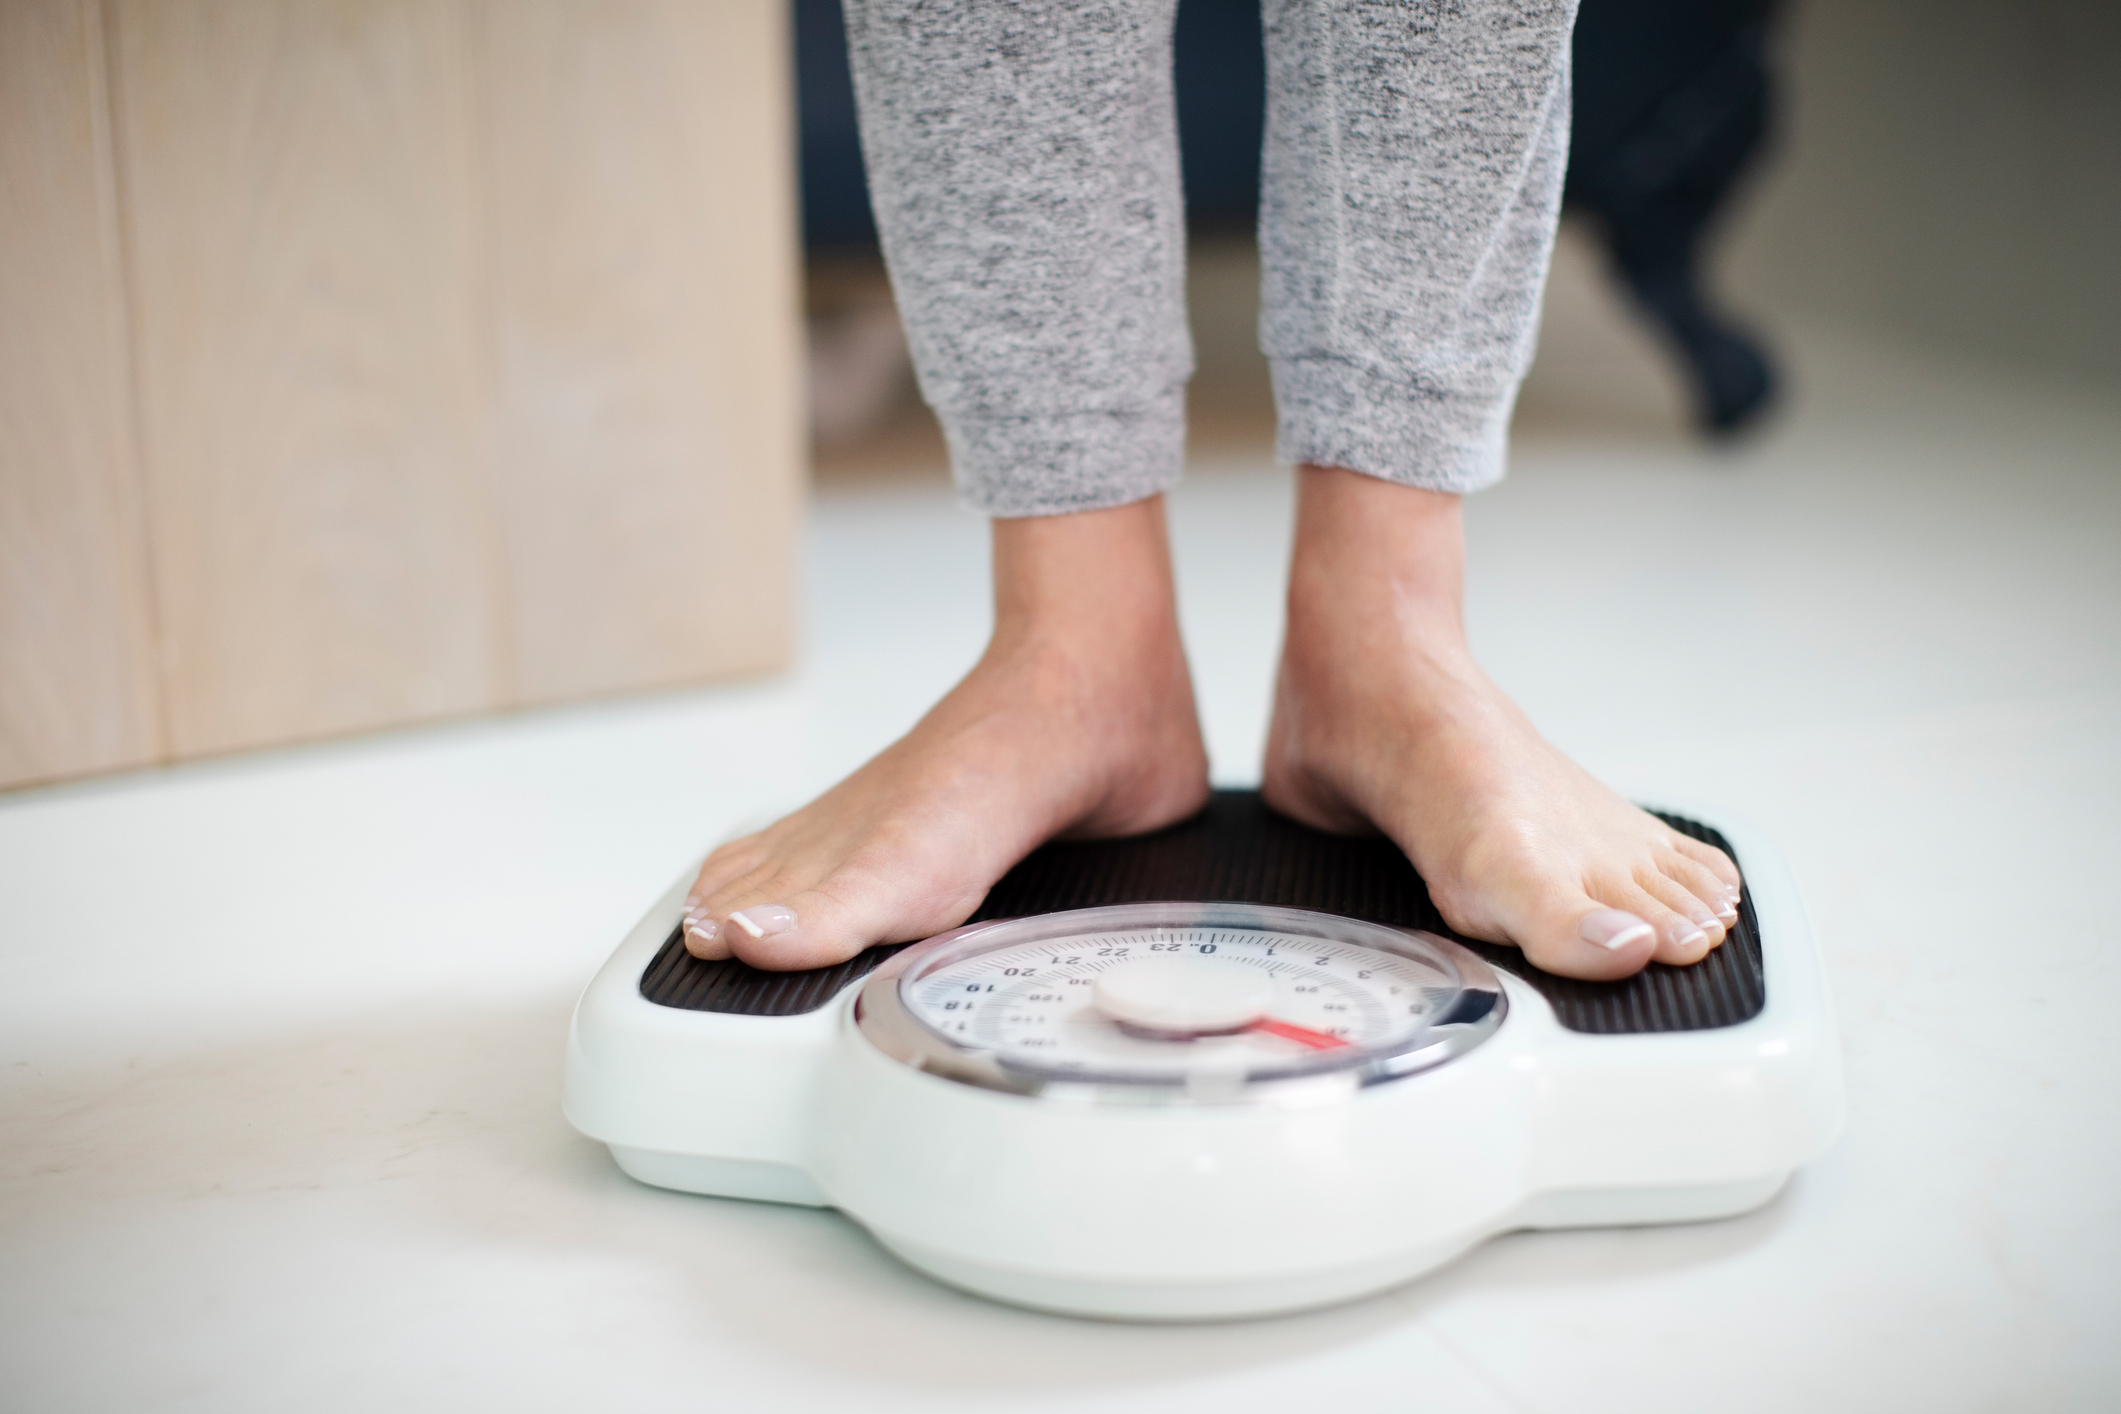 'Reach for nature first': How to avoid self-isolation weight gain